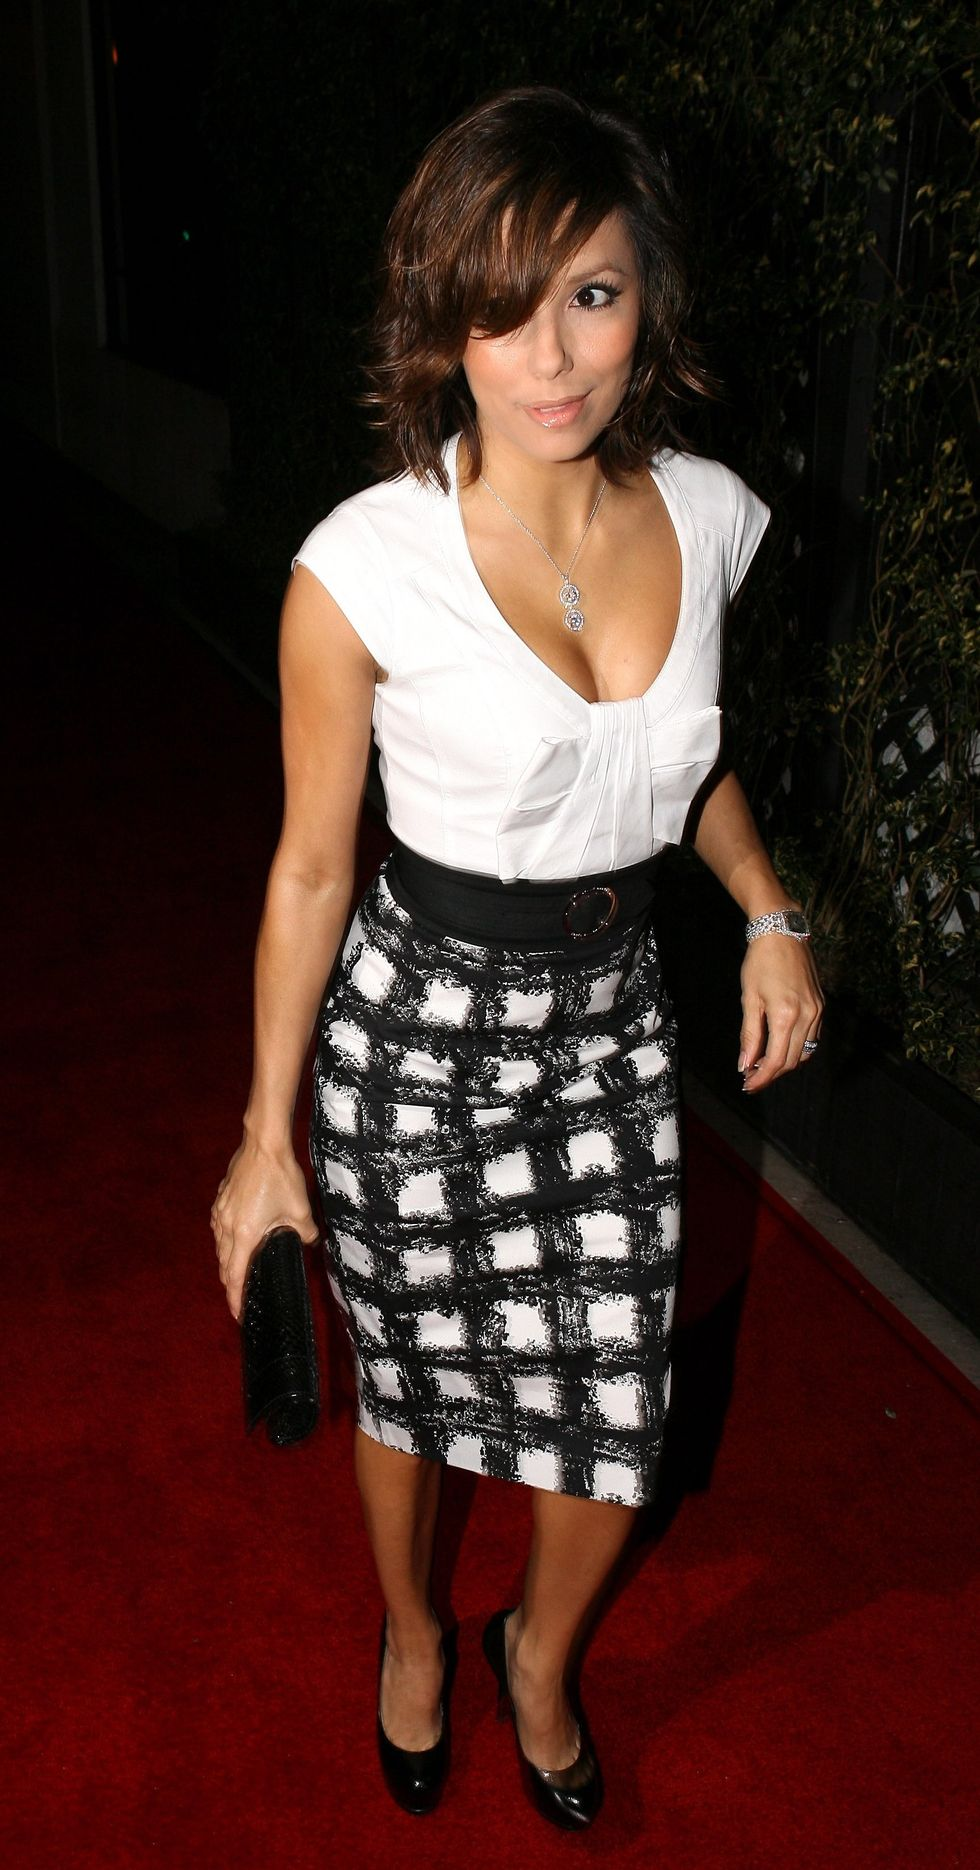 eva-longoria-cleavage-candids-at-beso-in-hollywood-2-01